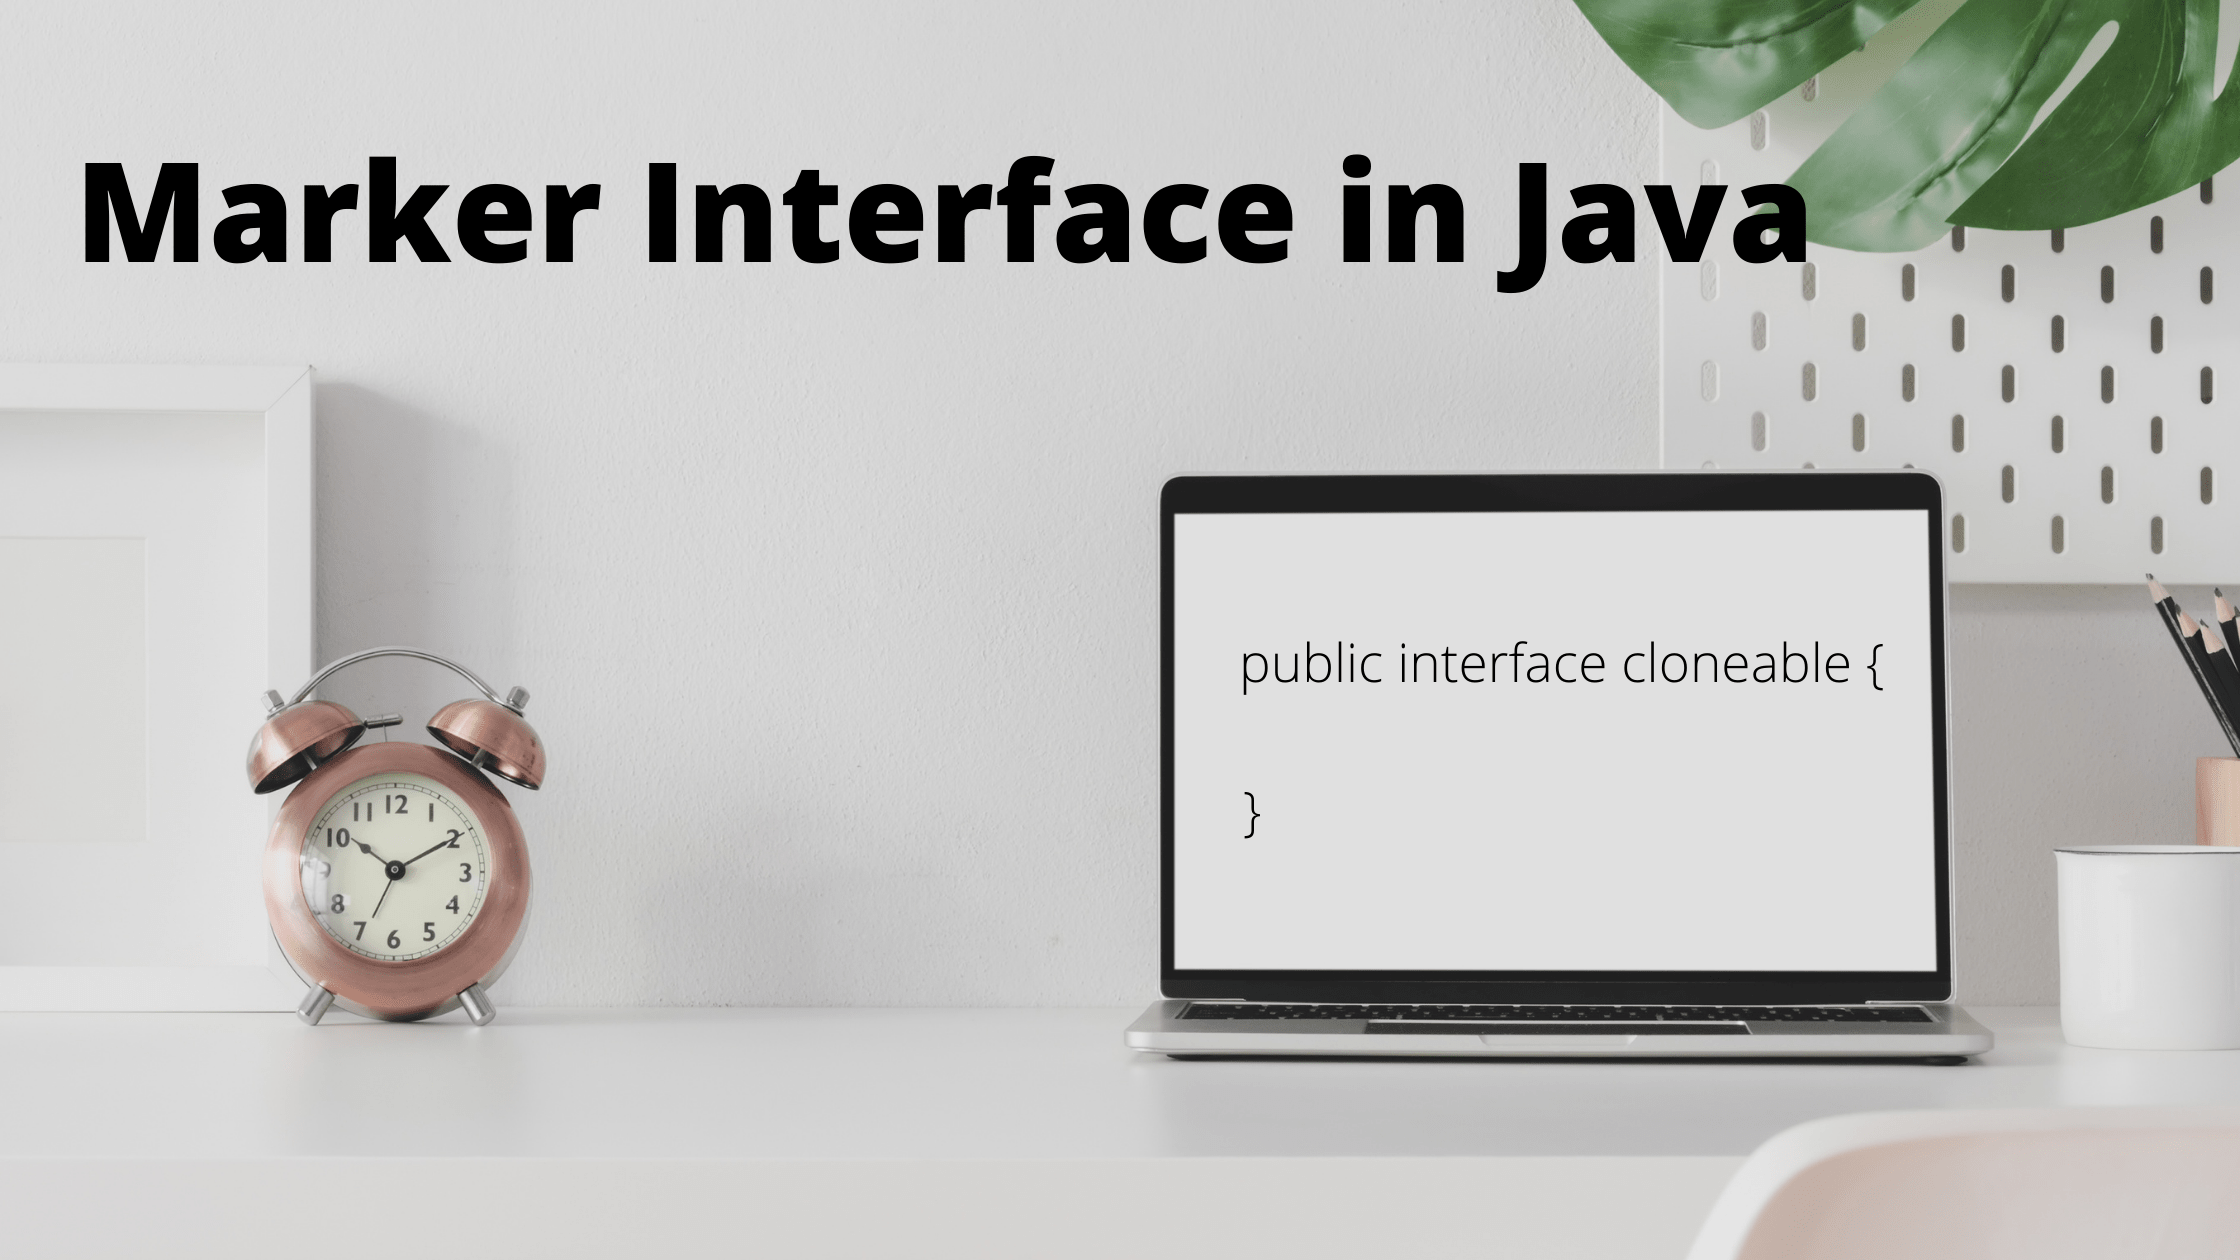 What is marker interface in java